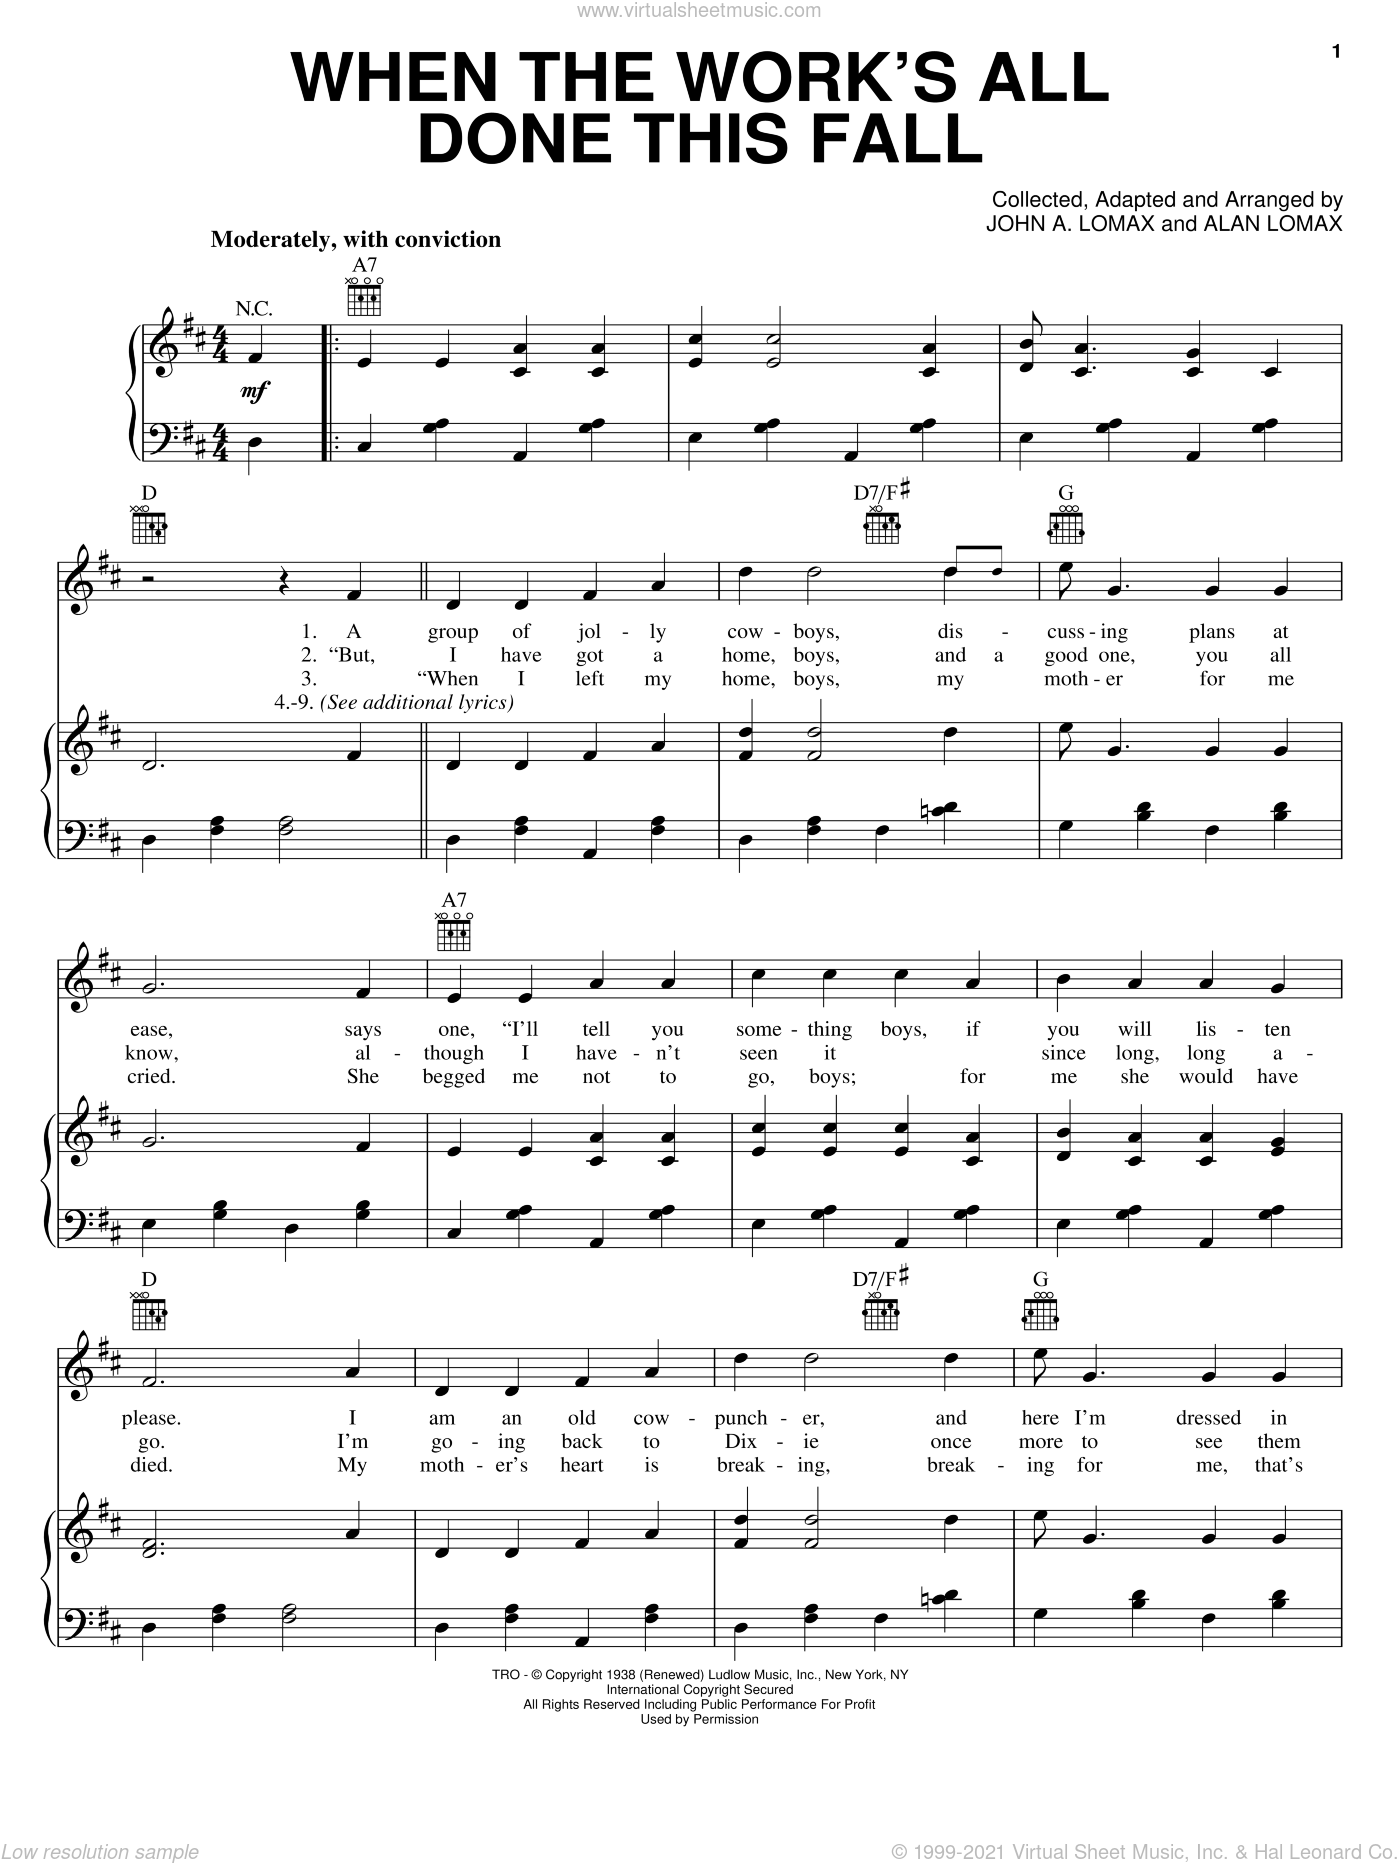 When The Work's All Done This Fall sheet music for voice, piano or guitar by John A. Lomax. Score Image Preview.